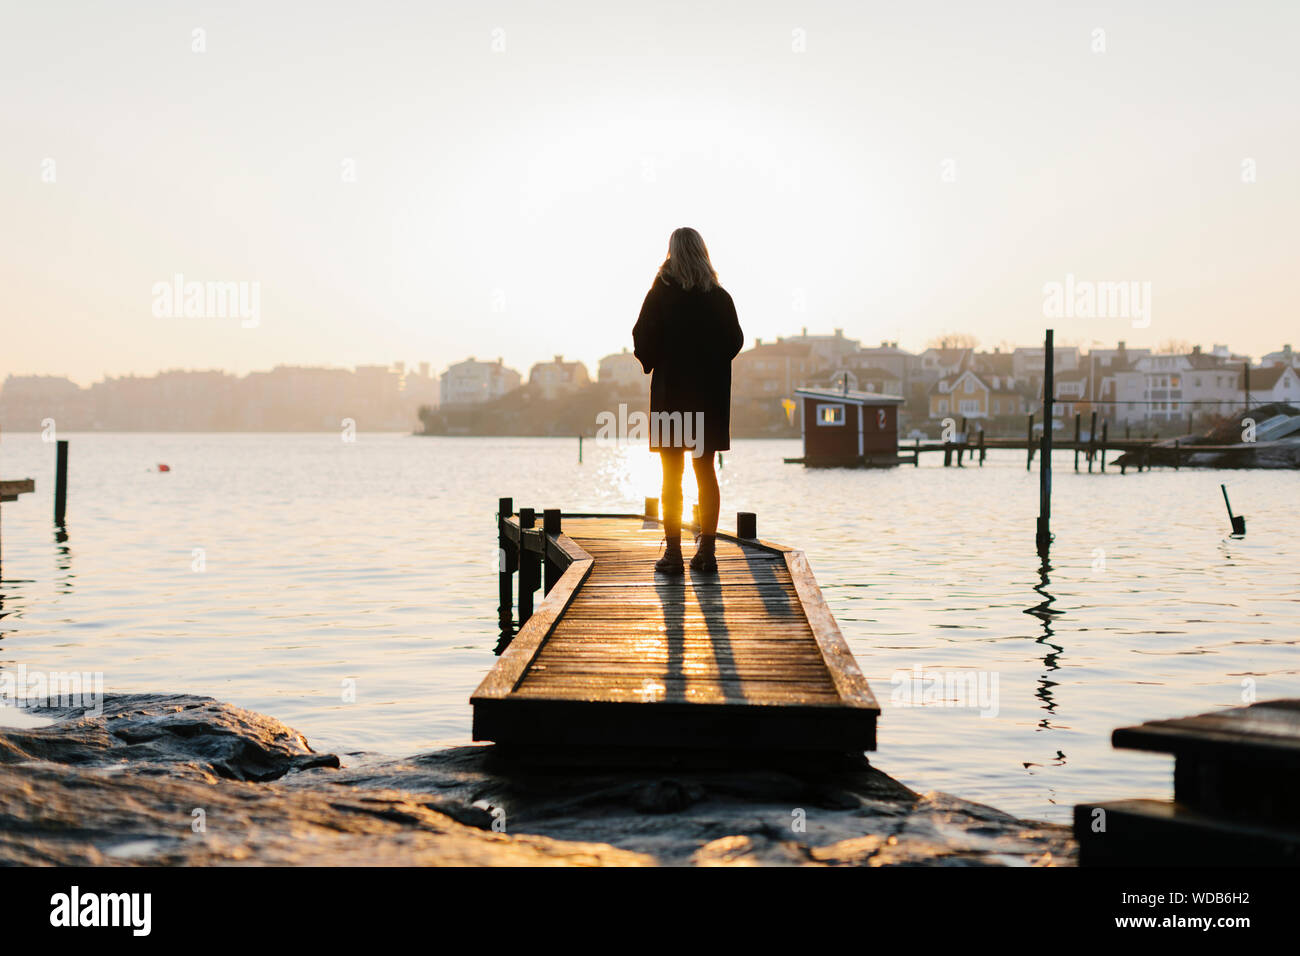 Silhouette of woman standing on jetty at sunset Stock Photo